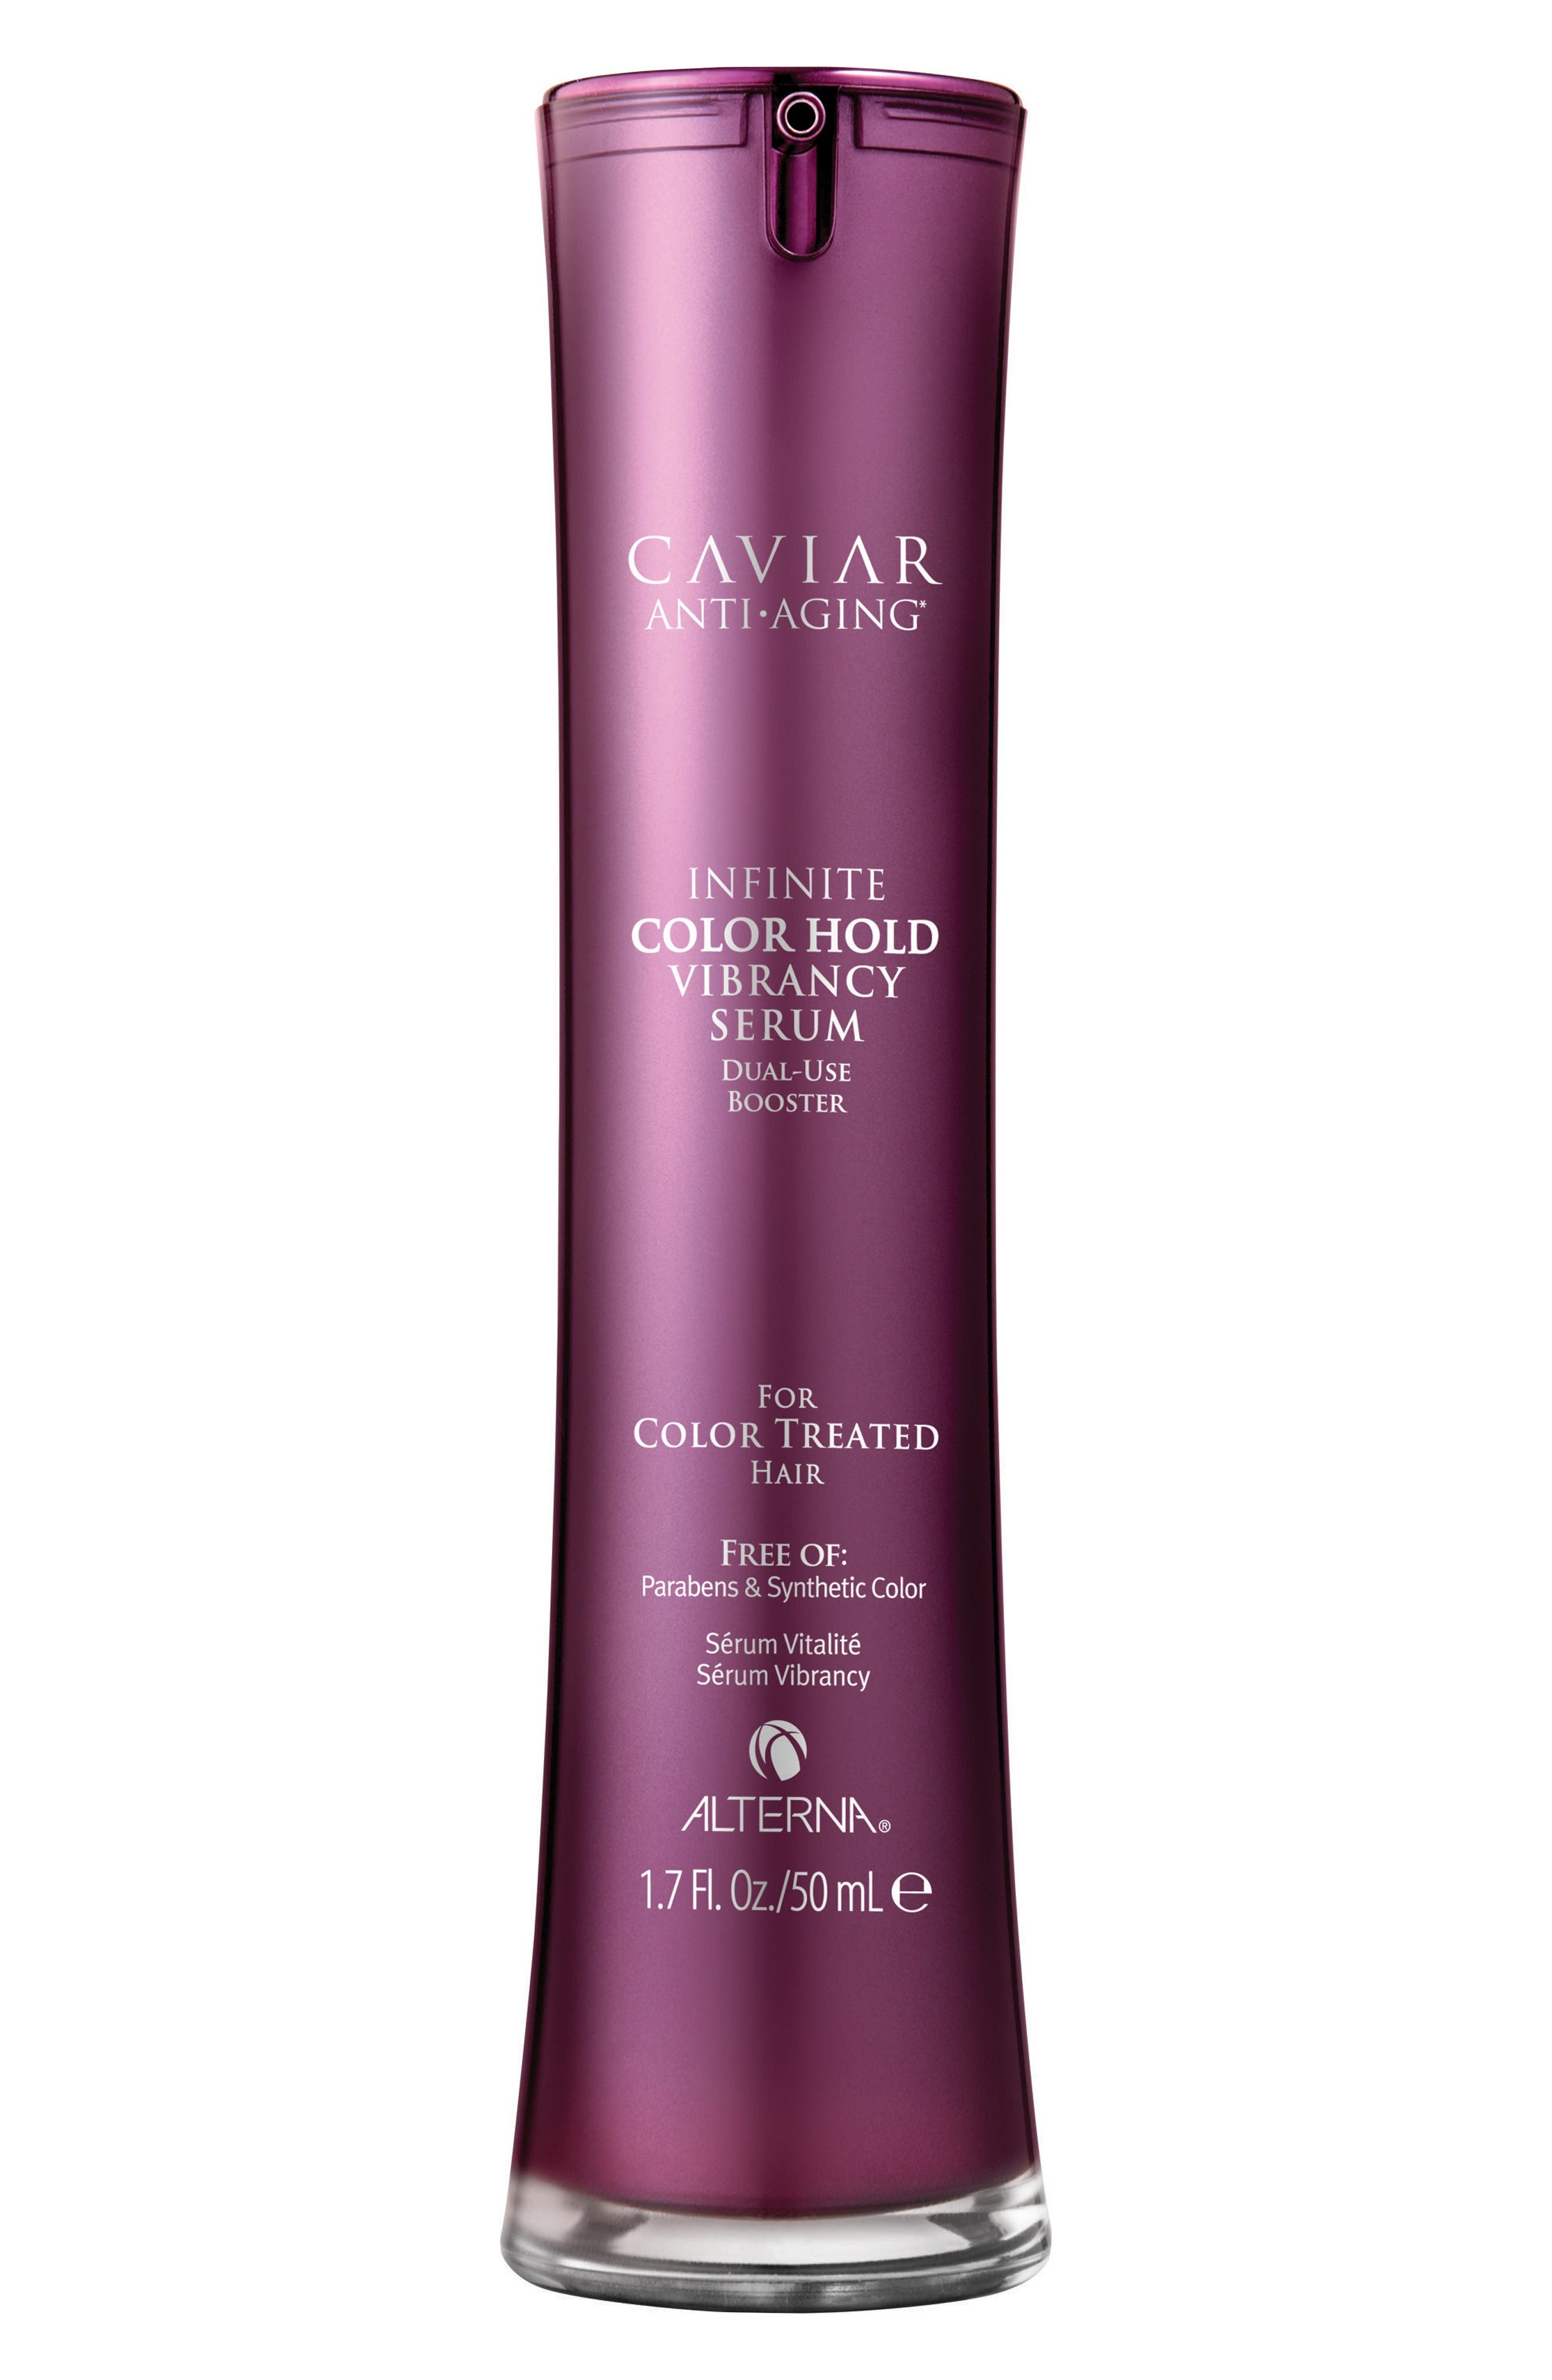 Alternate Image 1 Selected - ALTERNA® Caviar Infinite Color Hold Vibrancy Serum